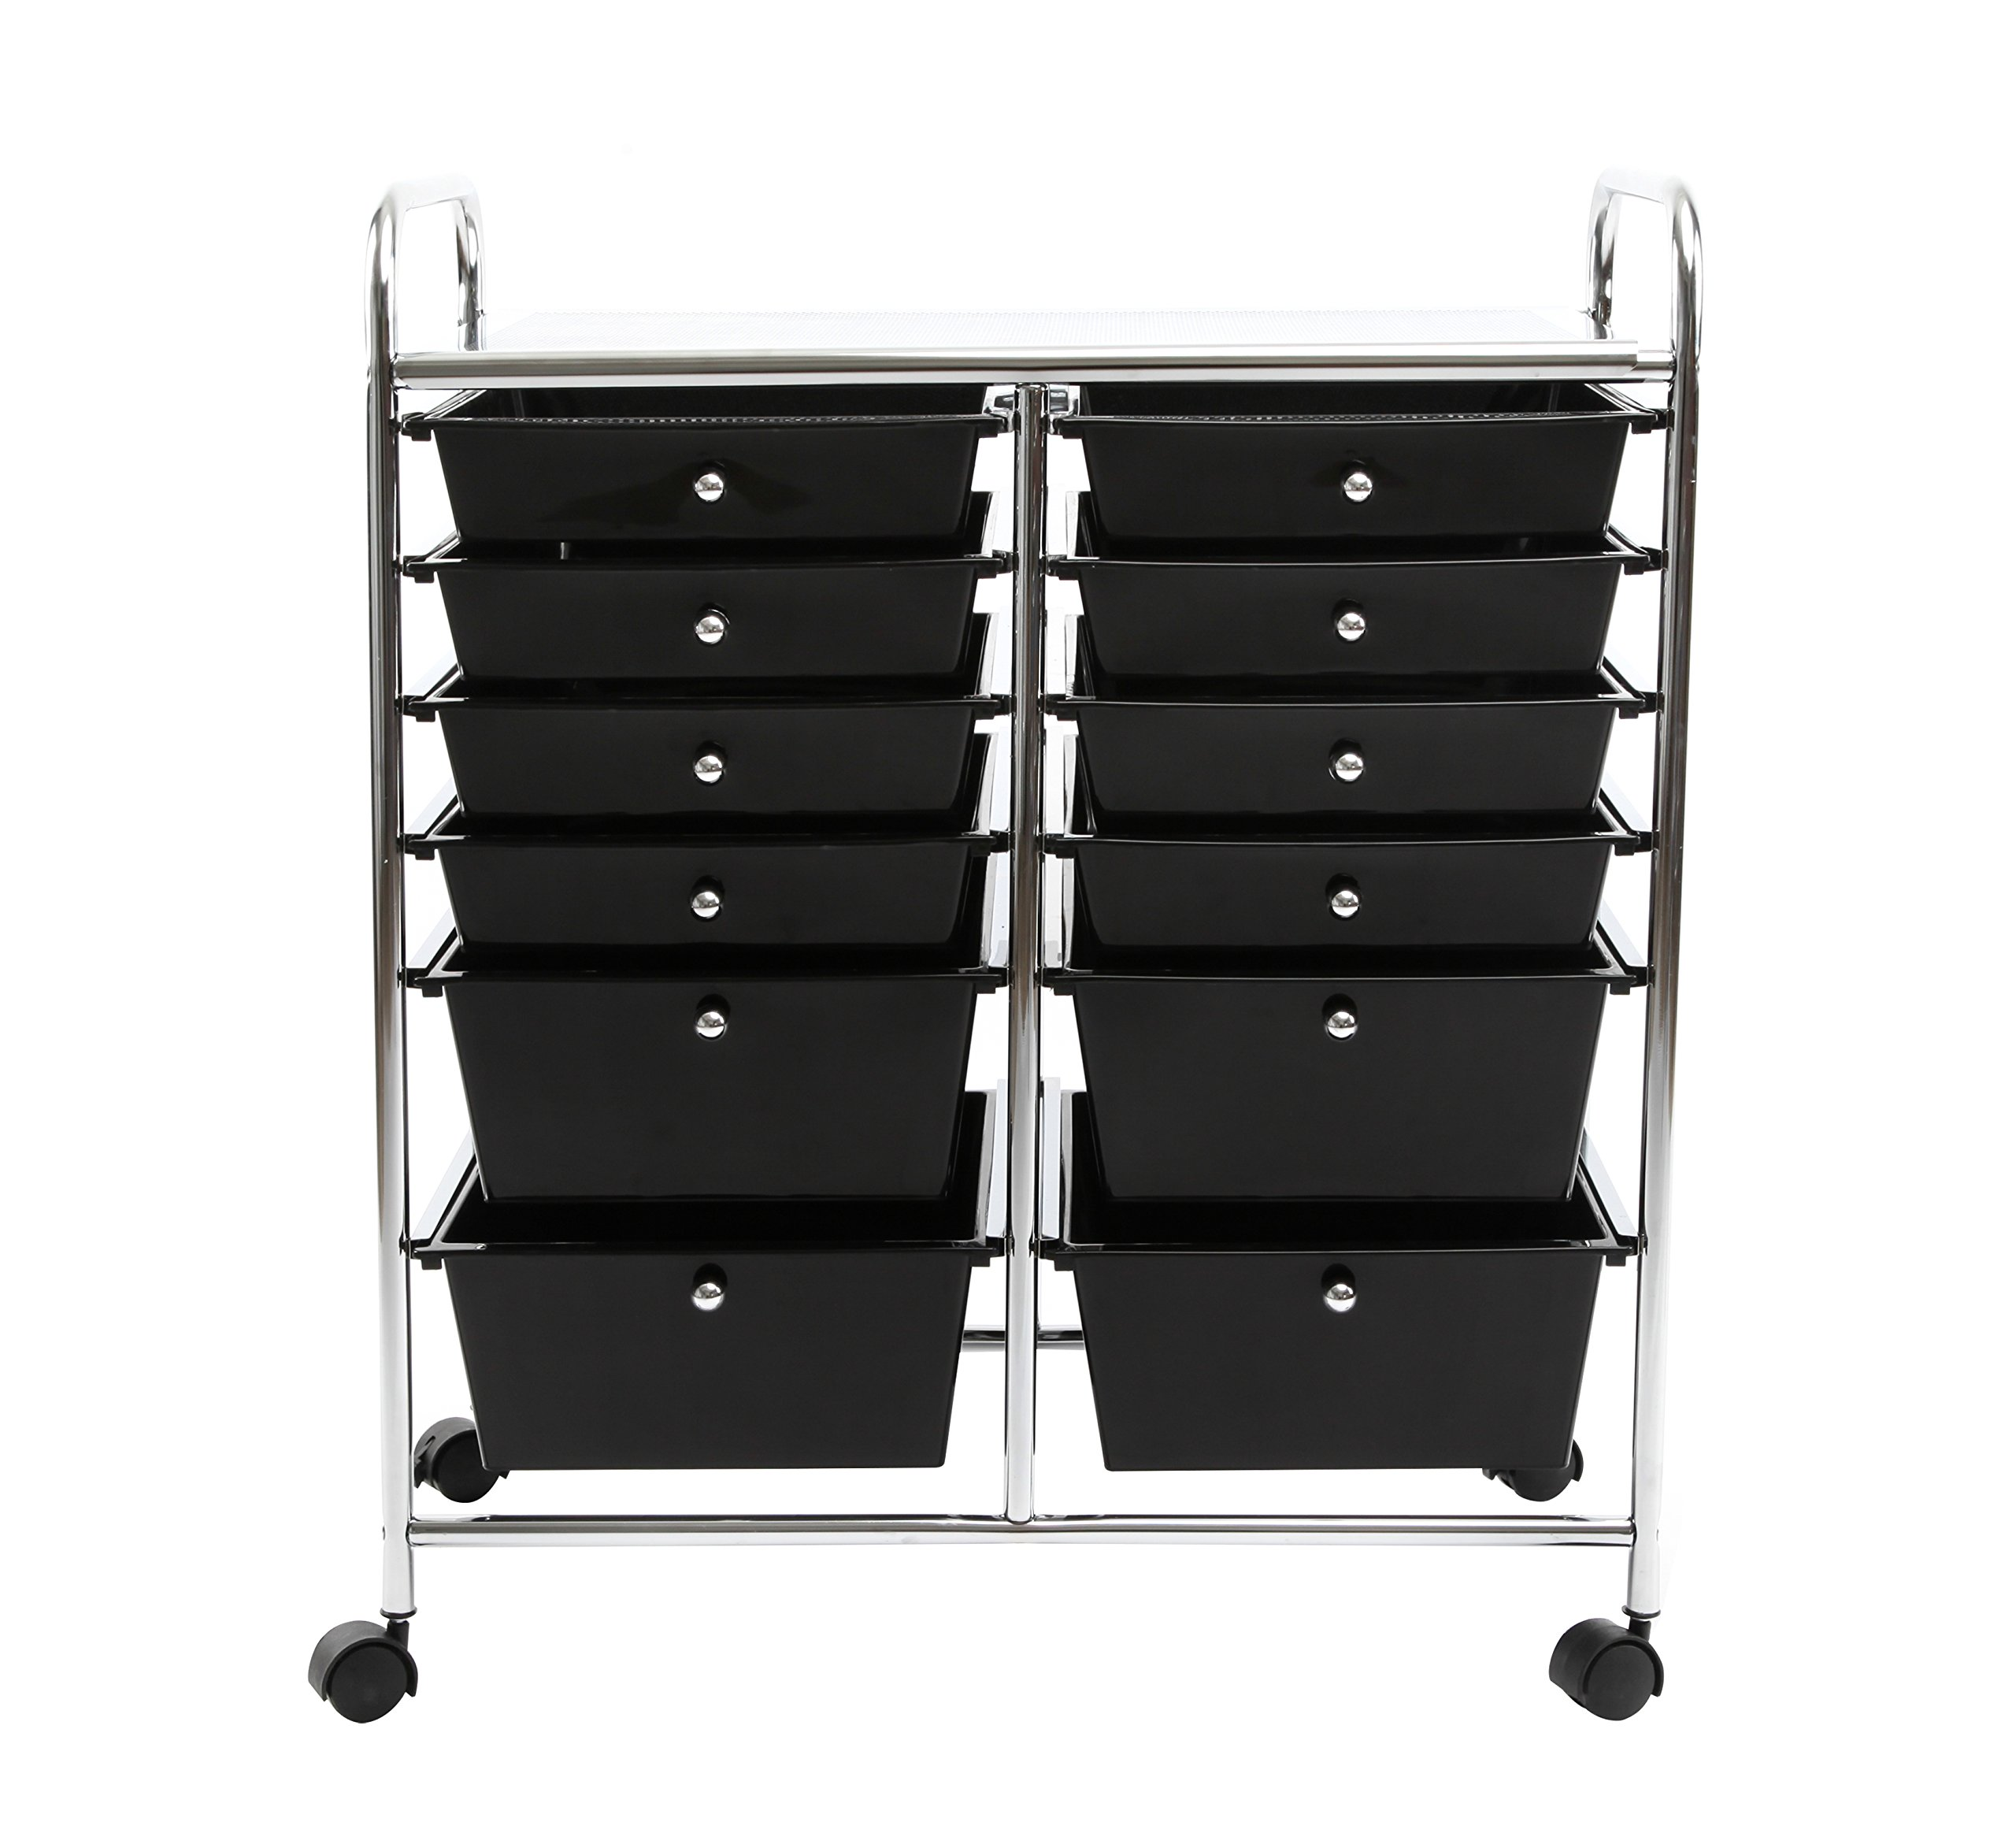 Finnhomy 12-Drawer Plastic Portable Mobile Organizer, Multi-Purpose Utility Double Rolling Storage Cart, Bright Chrome Metal Frame and Smoke Drawer Studio Trolley